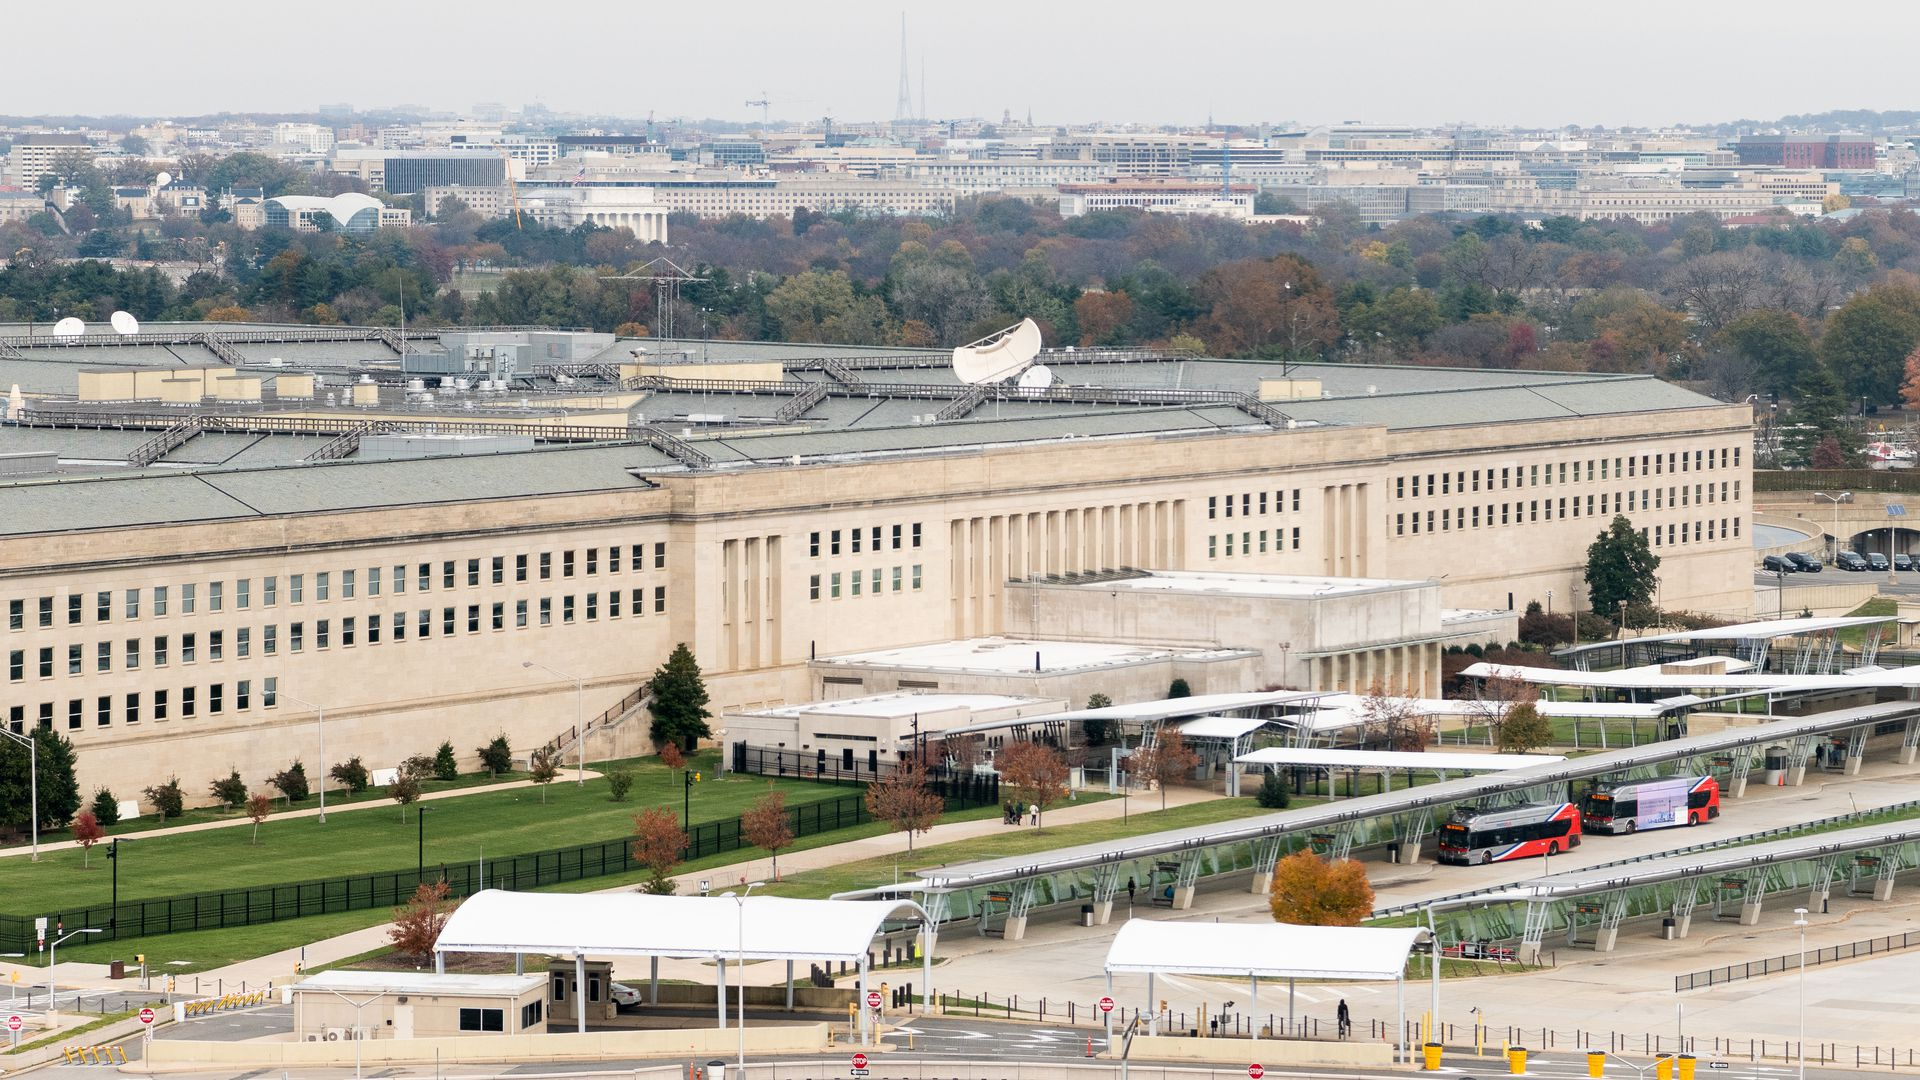 In this image, the Pentagon is seen from a distance.